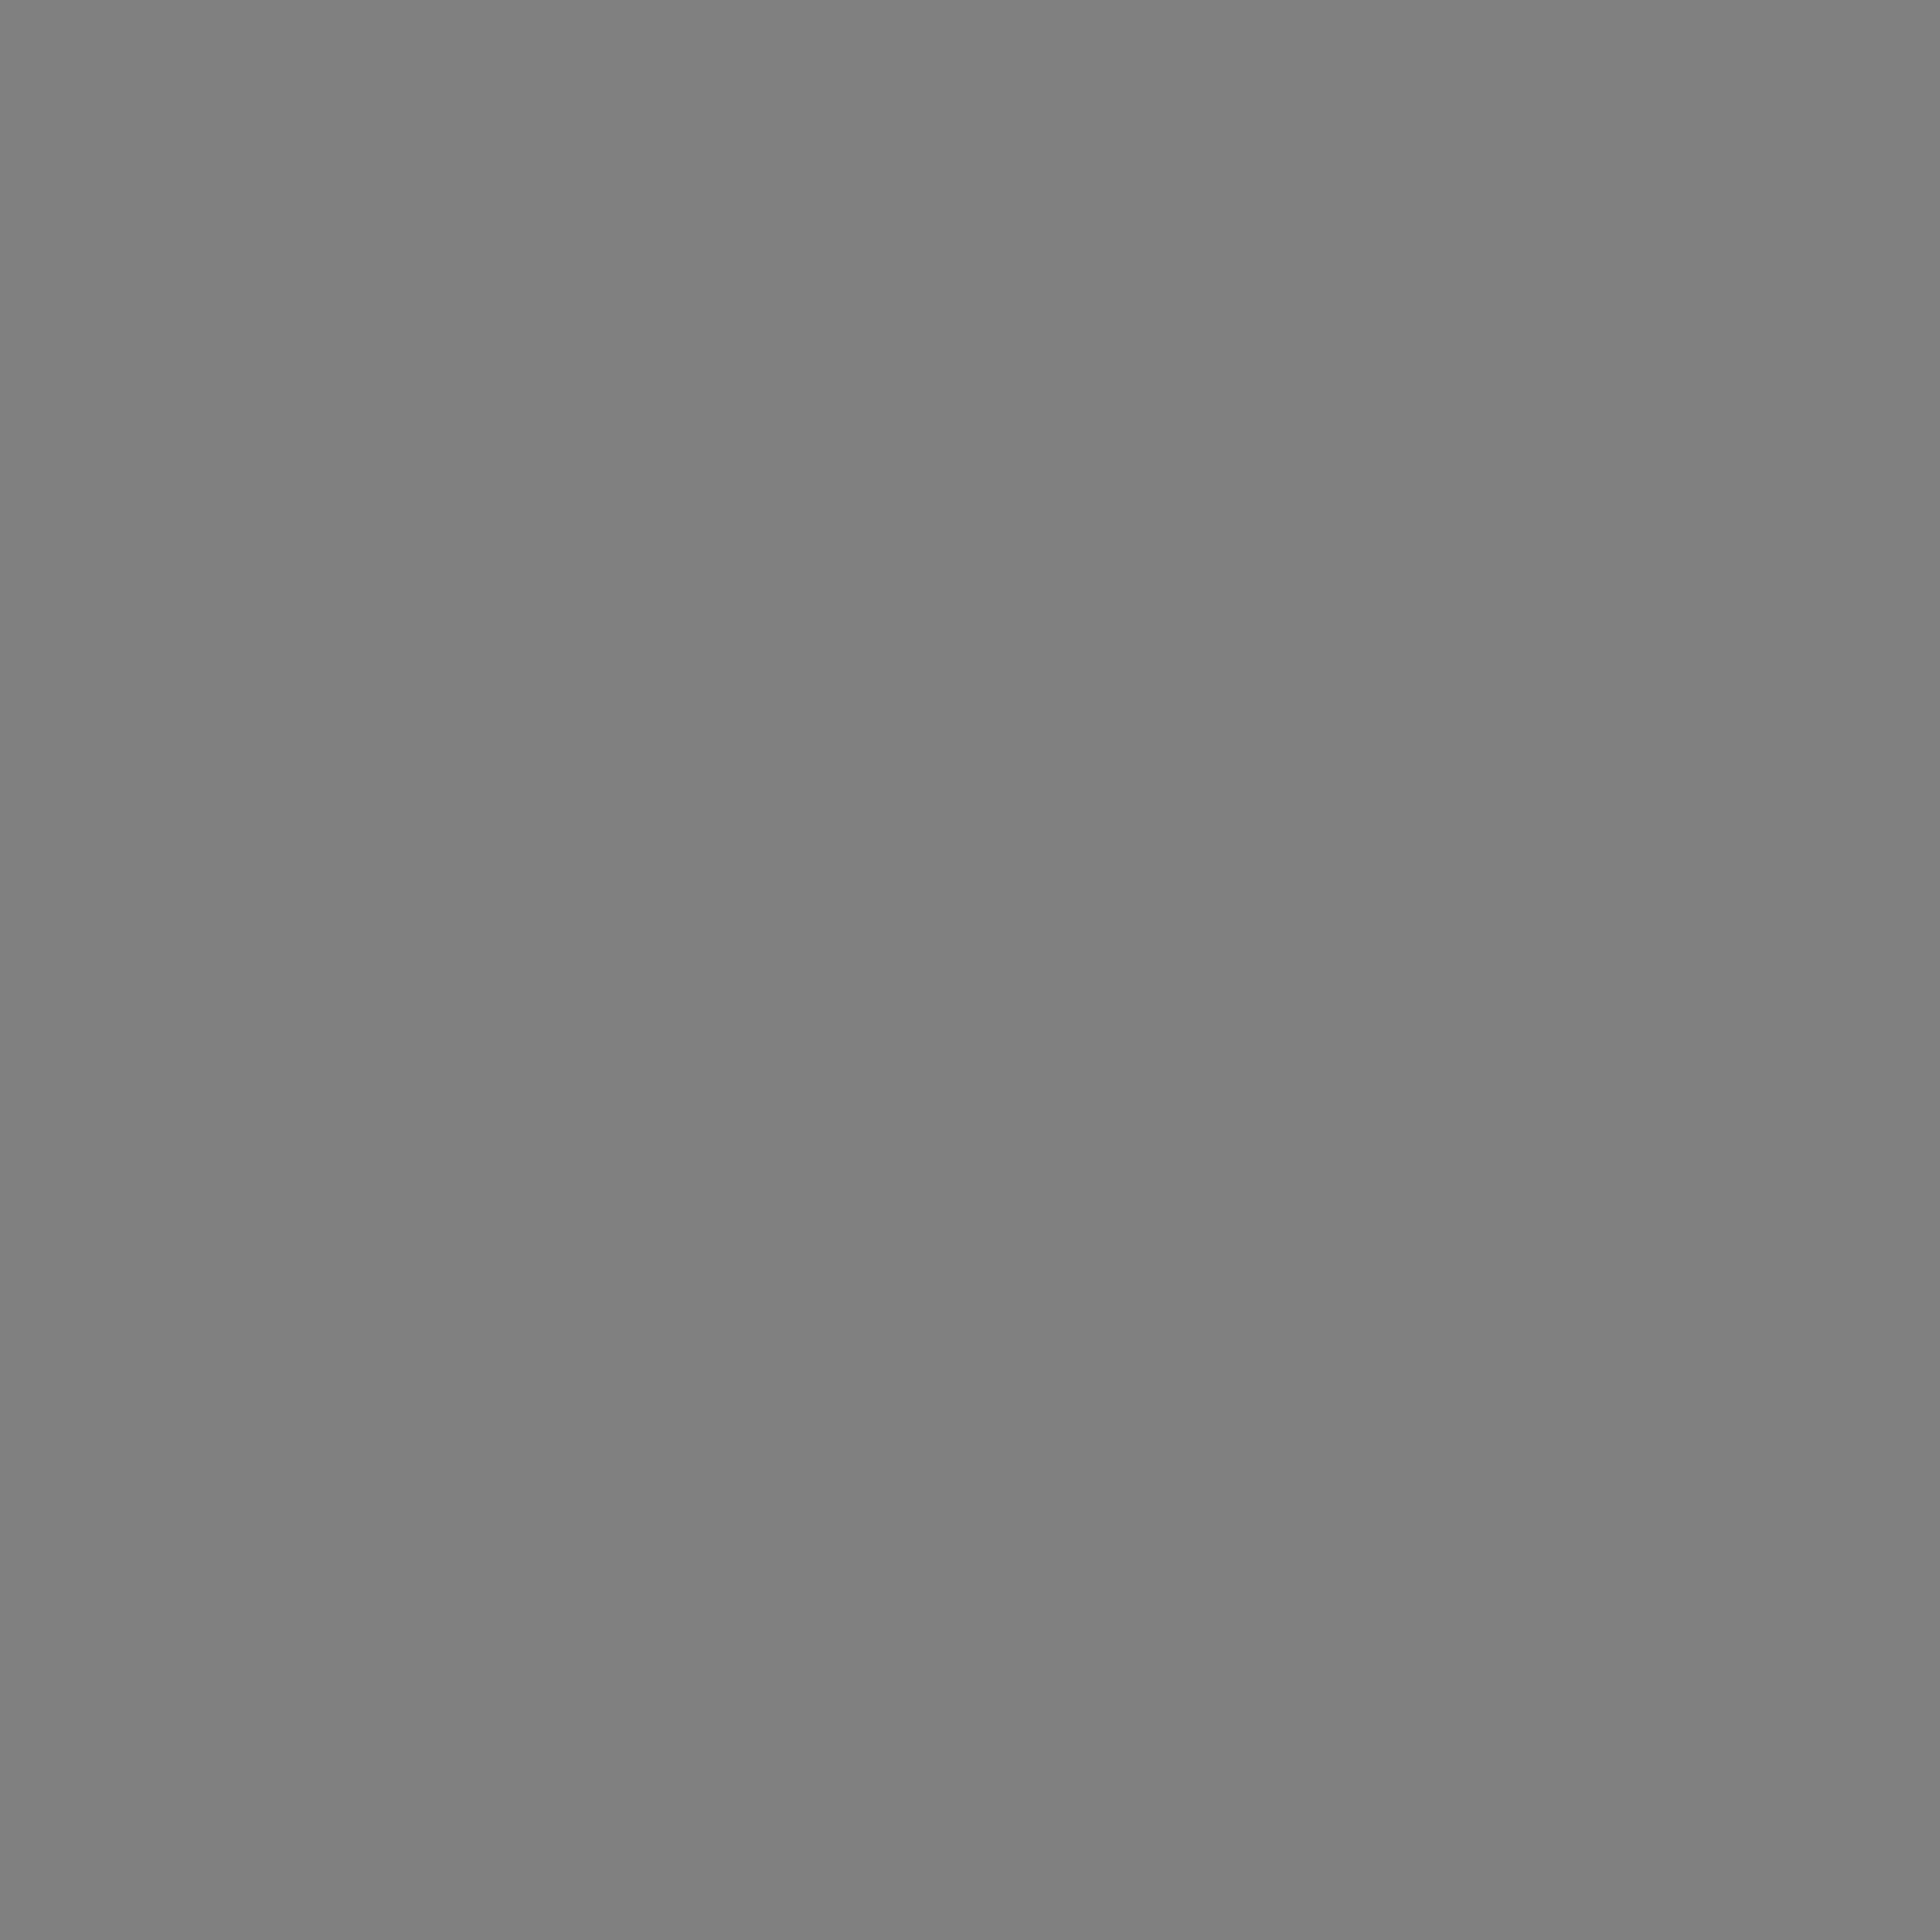 3600x3600 Gray Web Gray Solid Color Background